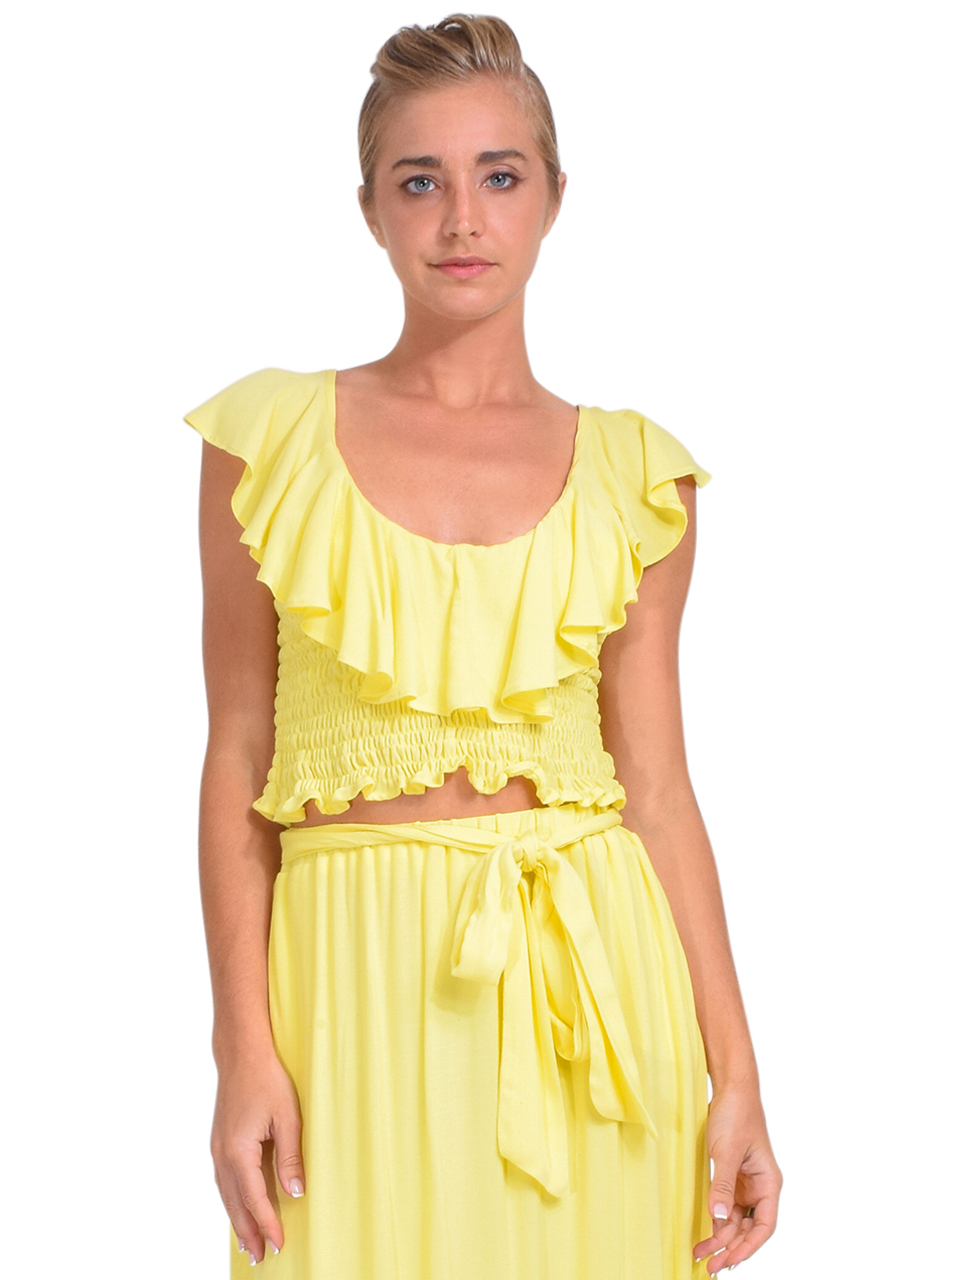 KASIA Sifnos Crop Top in Yellow Front View 2